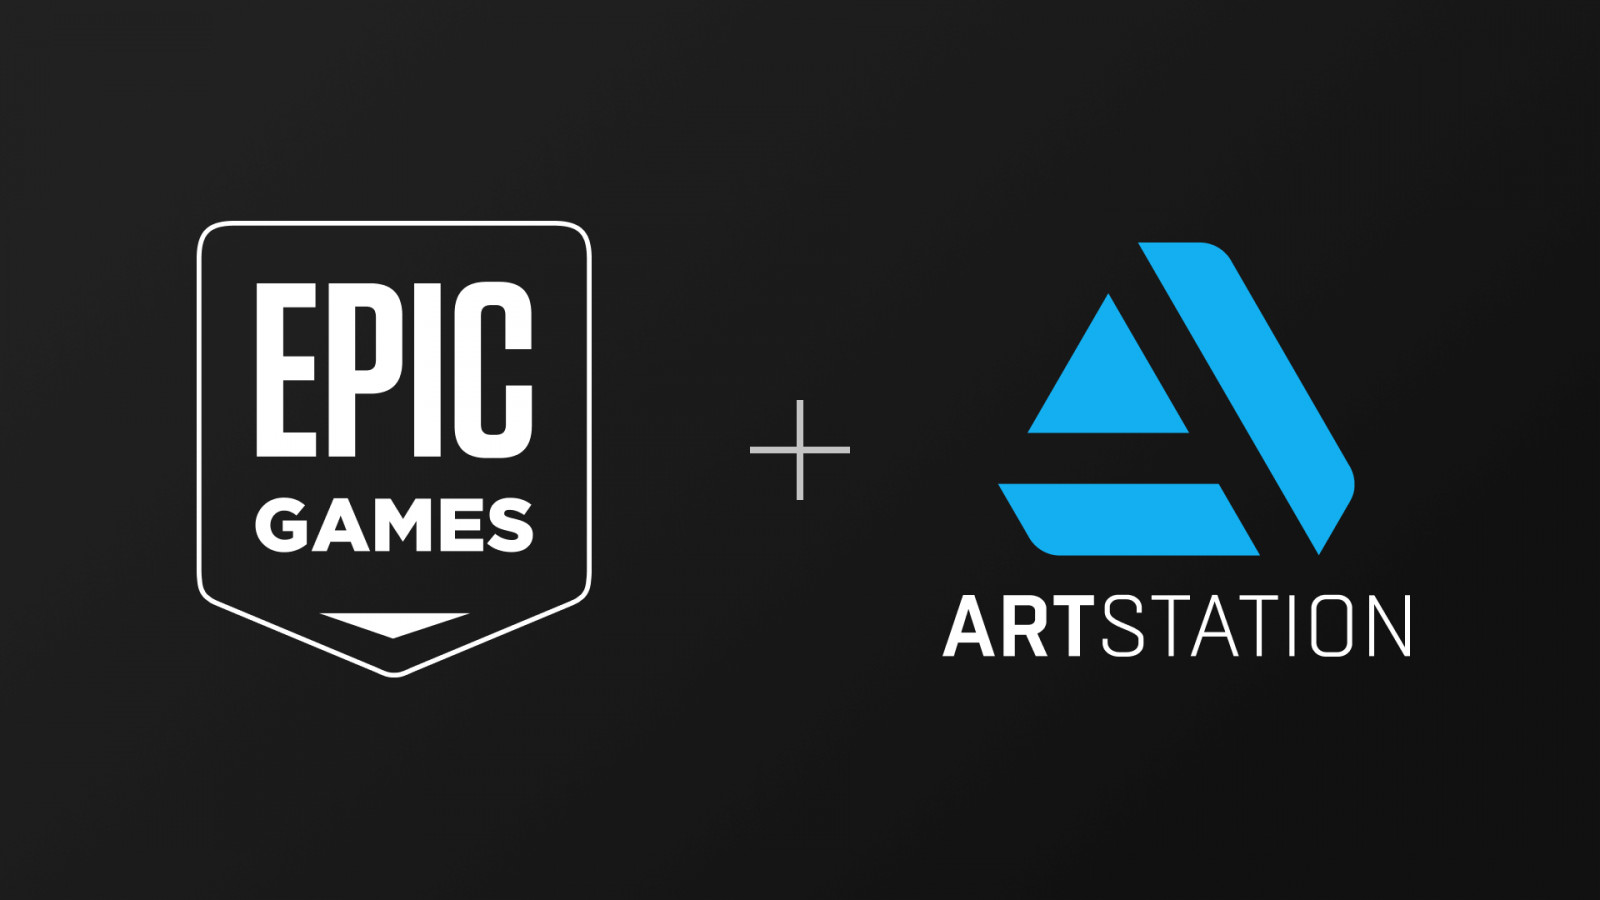 Cover image for Quick take: Epic doubles down on expression and creation with the acquisition of ArtStation